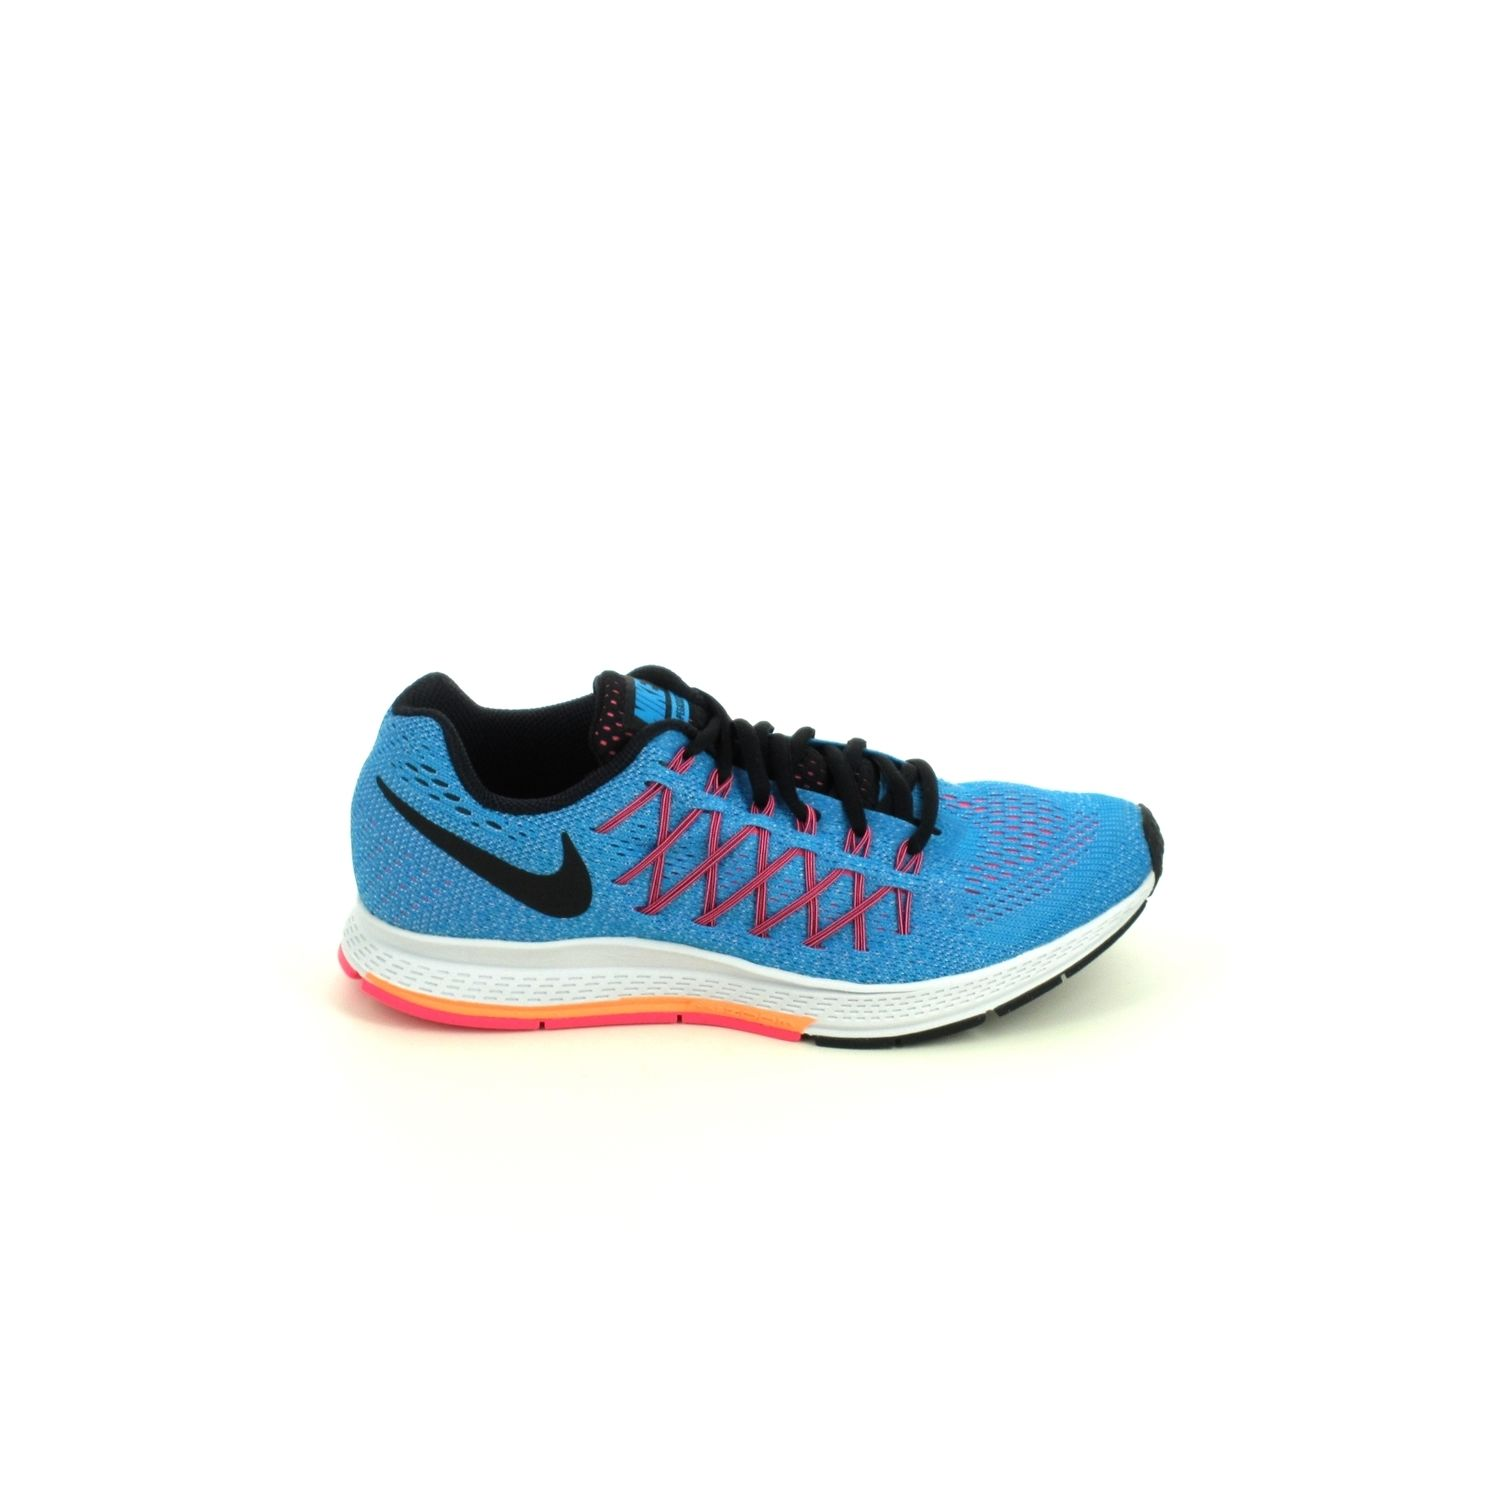 Pegasus Zoom Pegasus pas 32 Rose Air Nike Clair Bleu Bleu Clair wE6Aqzn